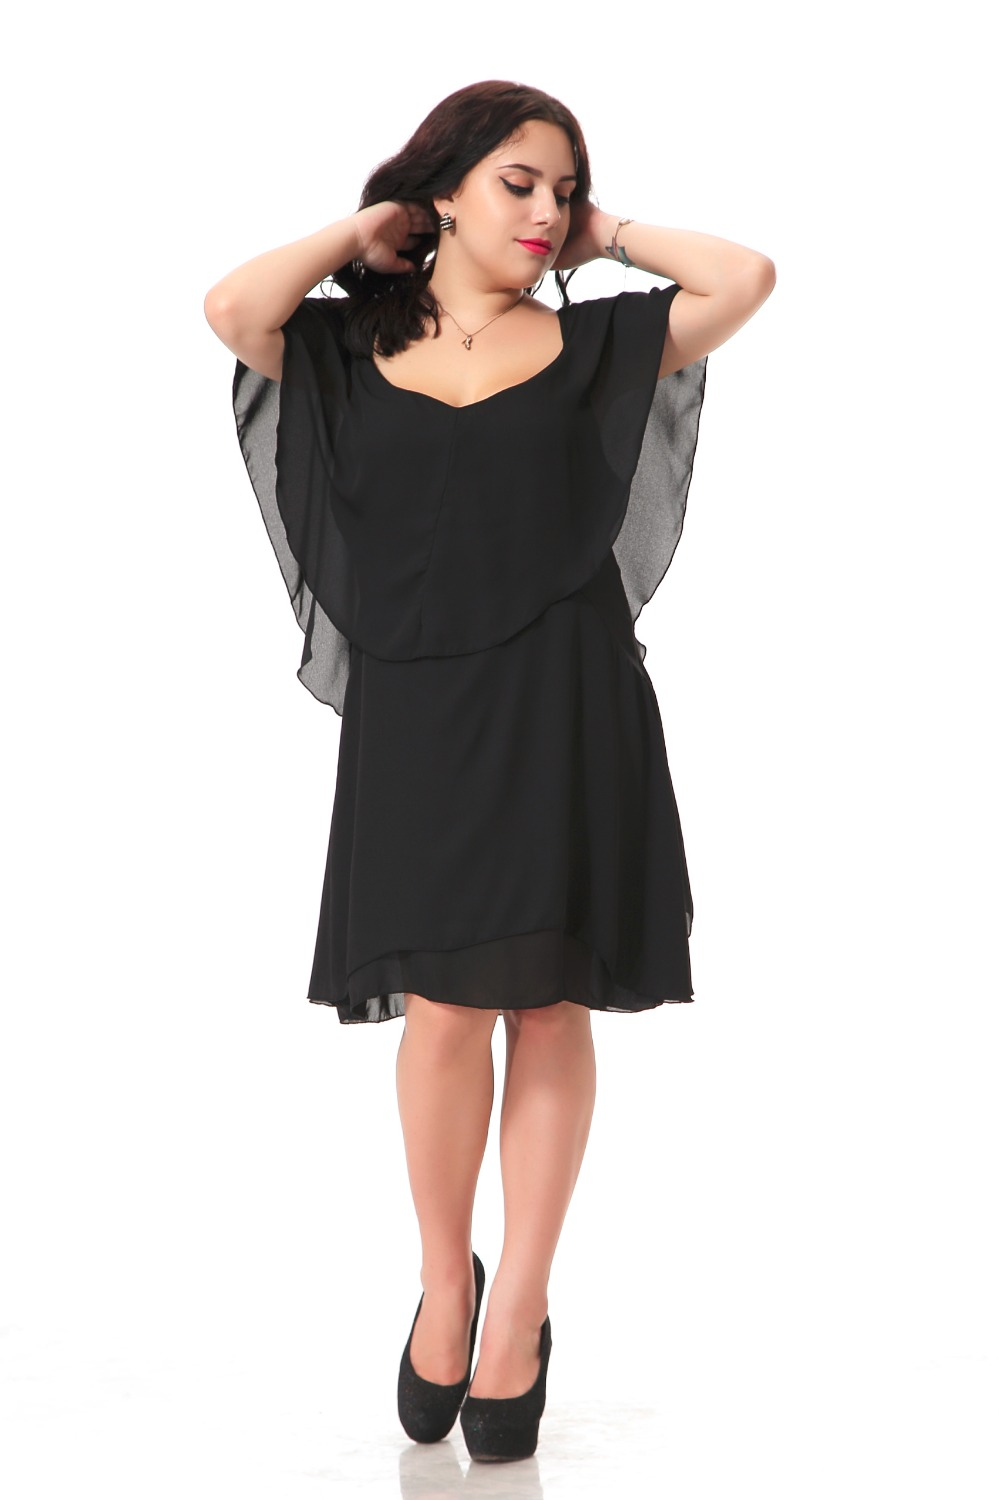 Women s black dresses you abstract